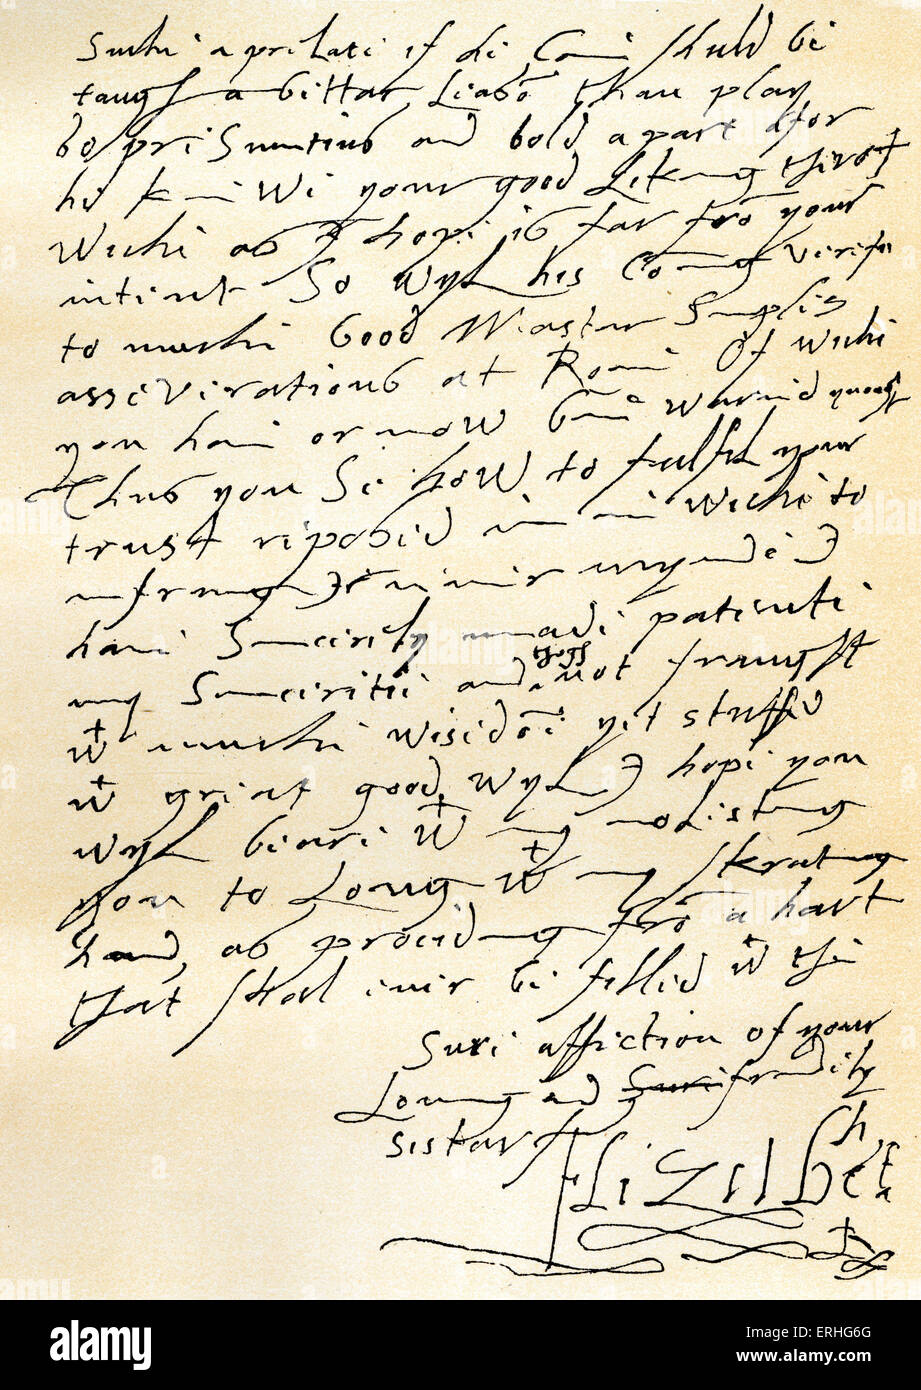 Queen Elizabeth - manuscript letter to James VI of Scotland refuting charges against her policy made by Phillip - Stock Image